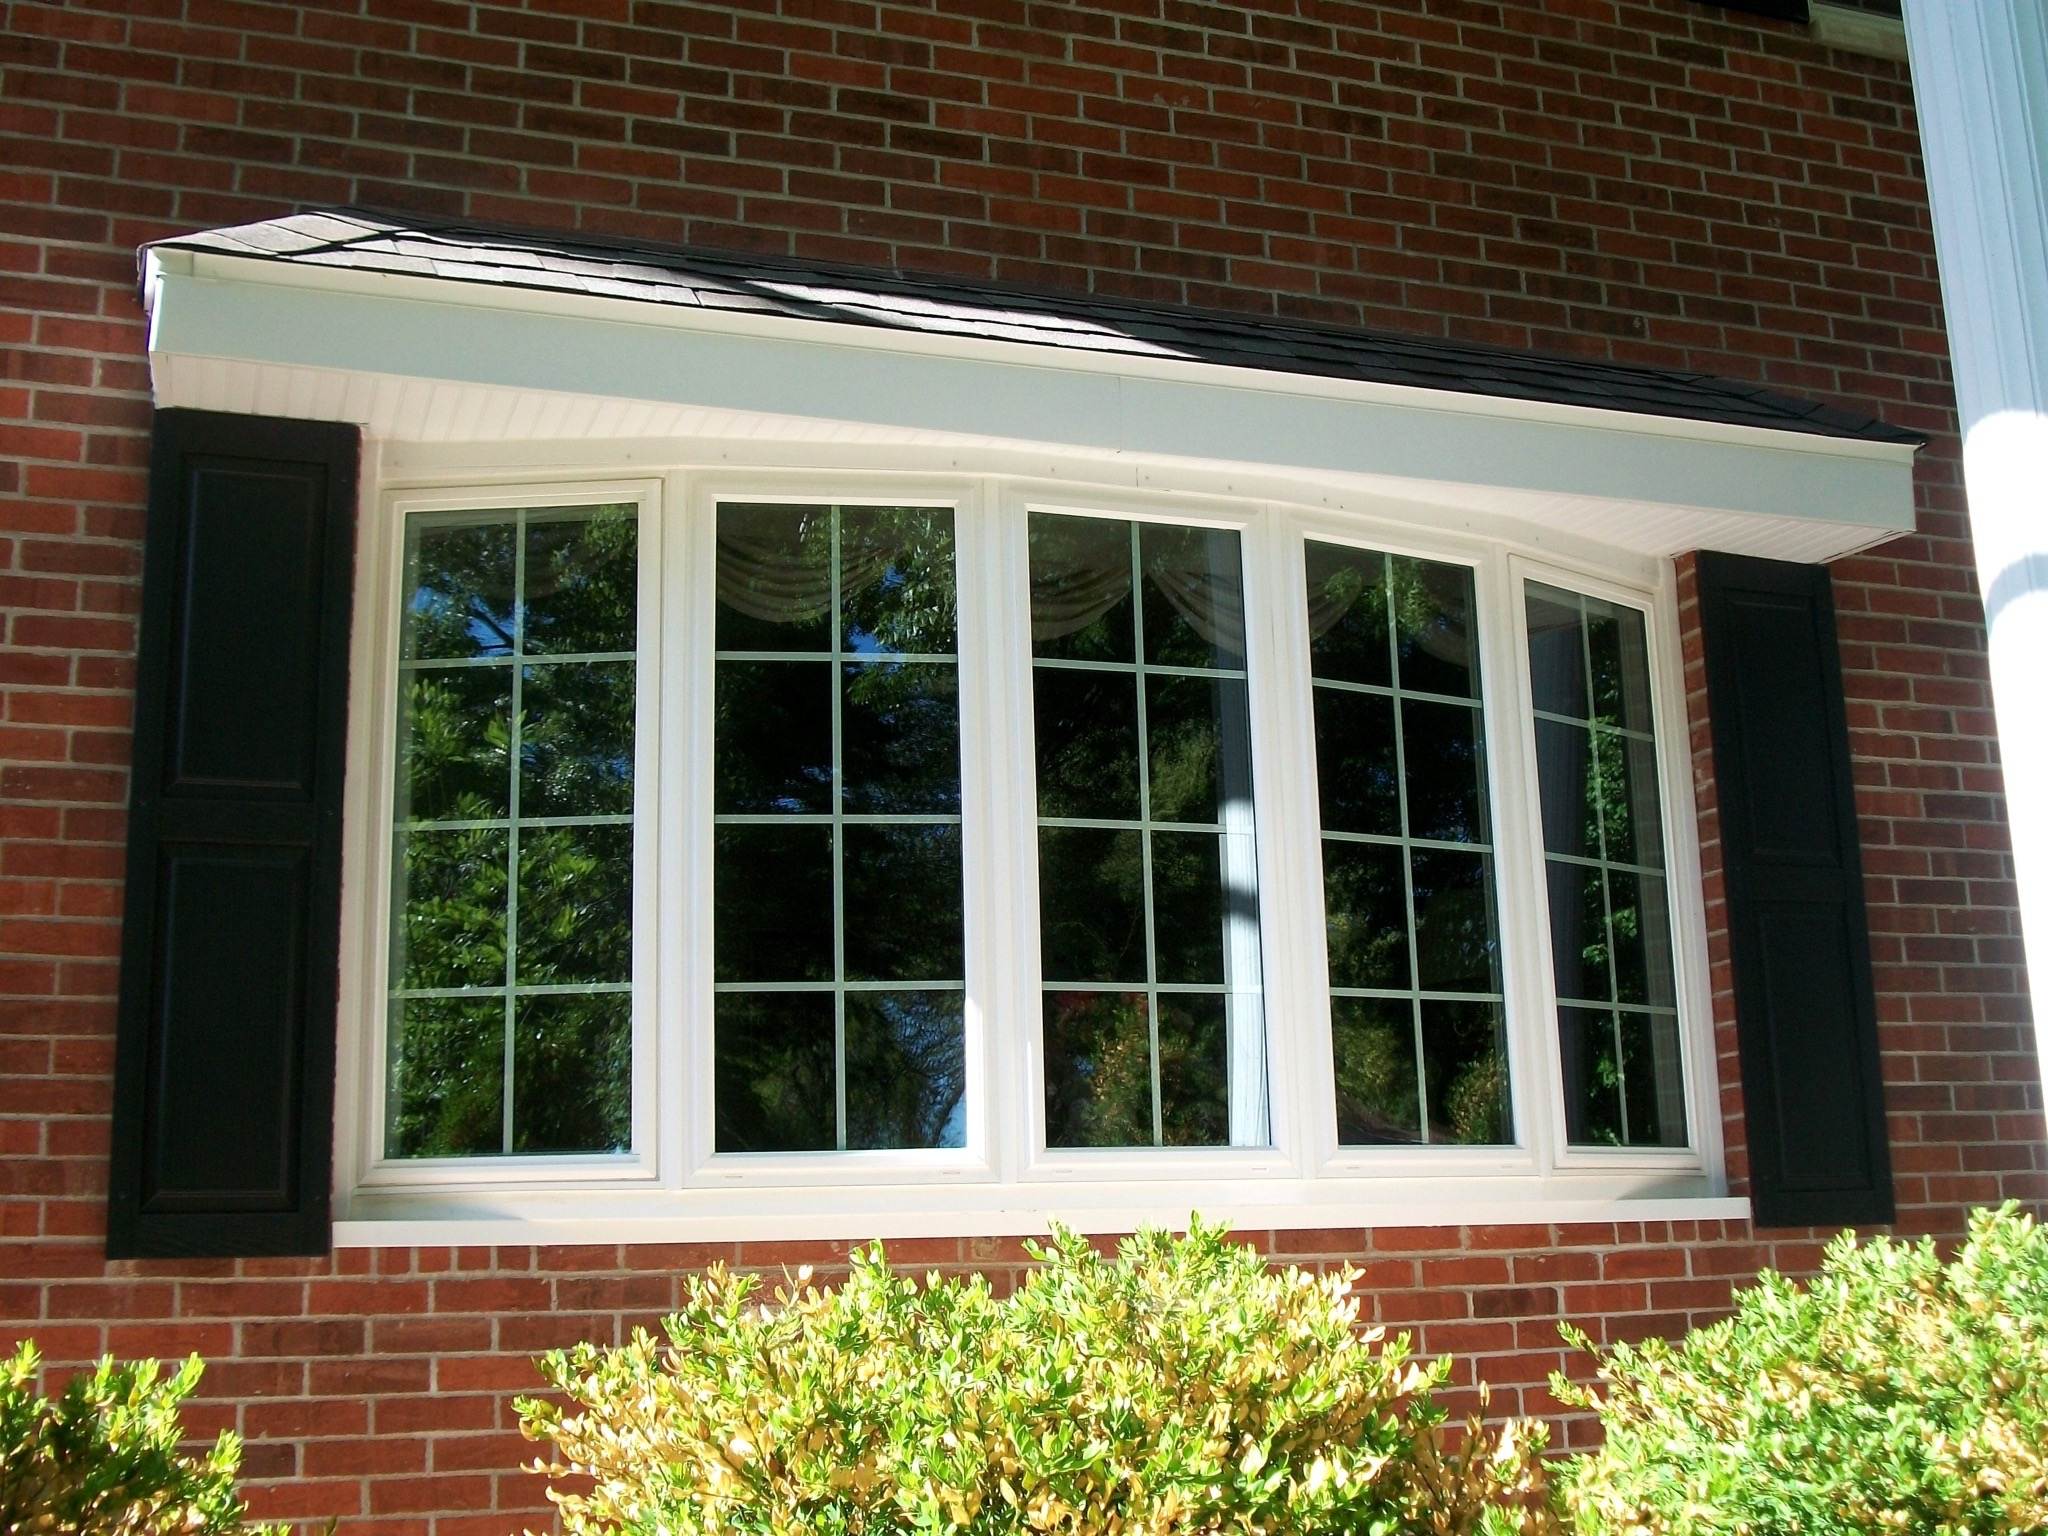 difference between bay and bow windows bow windows have difference between bay or bow windows bendable rods